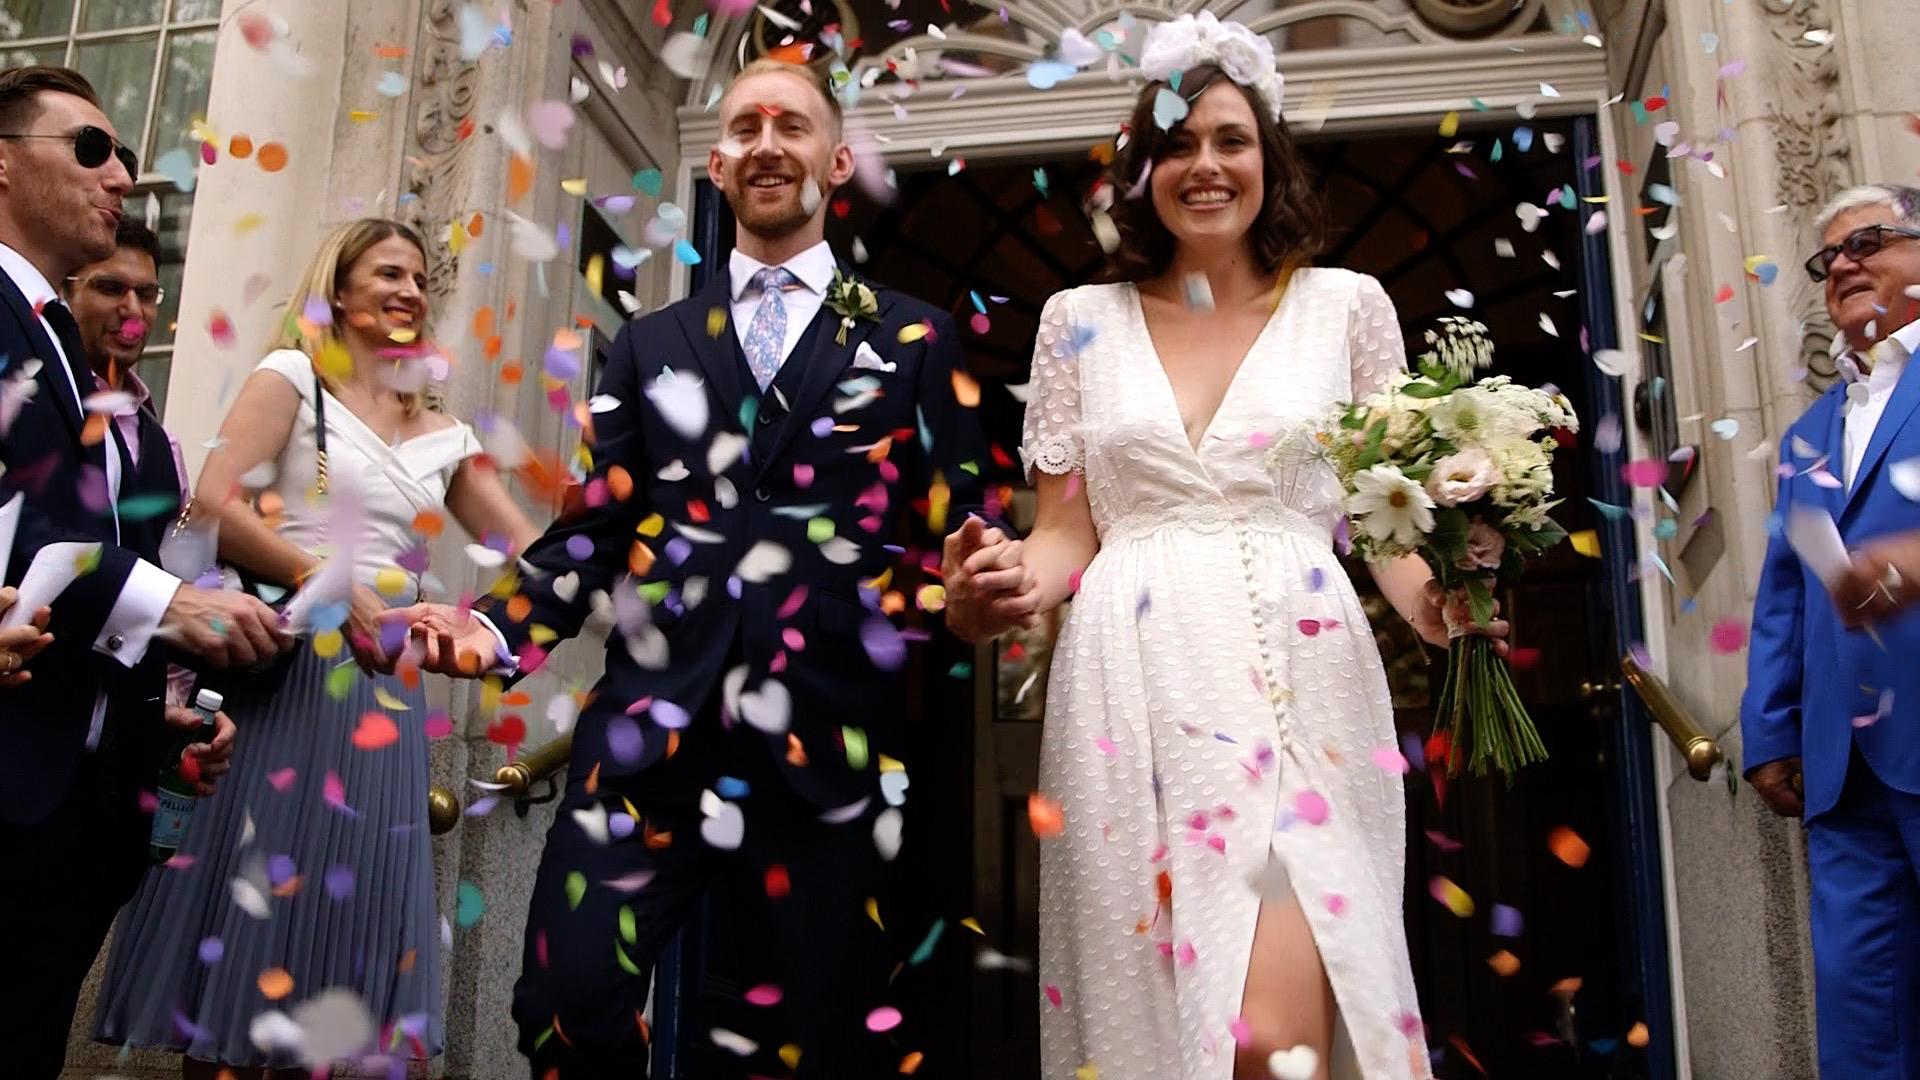 Wedding Top Tips - Wedding Videography | Anneka Ireland Videography